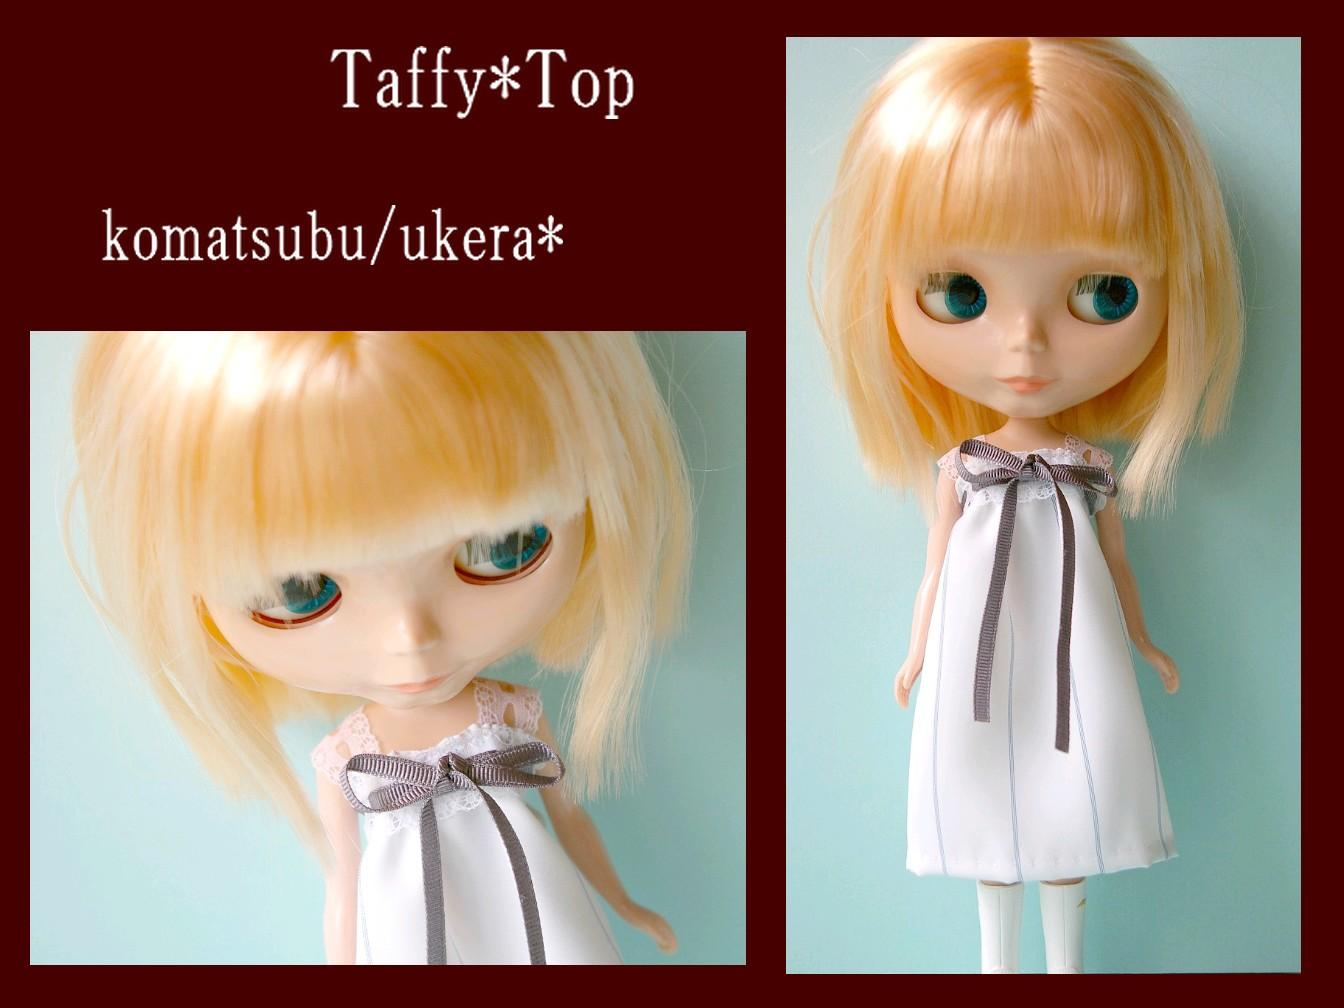 Taffy*Top